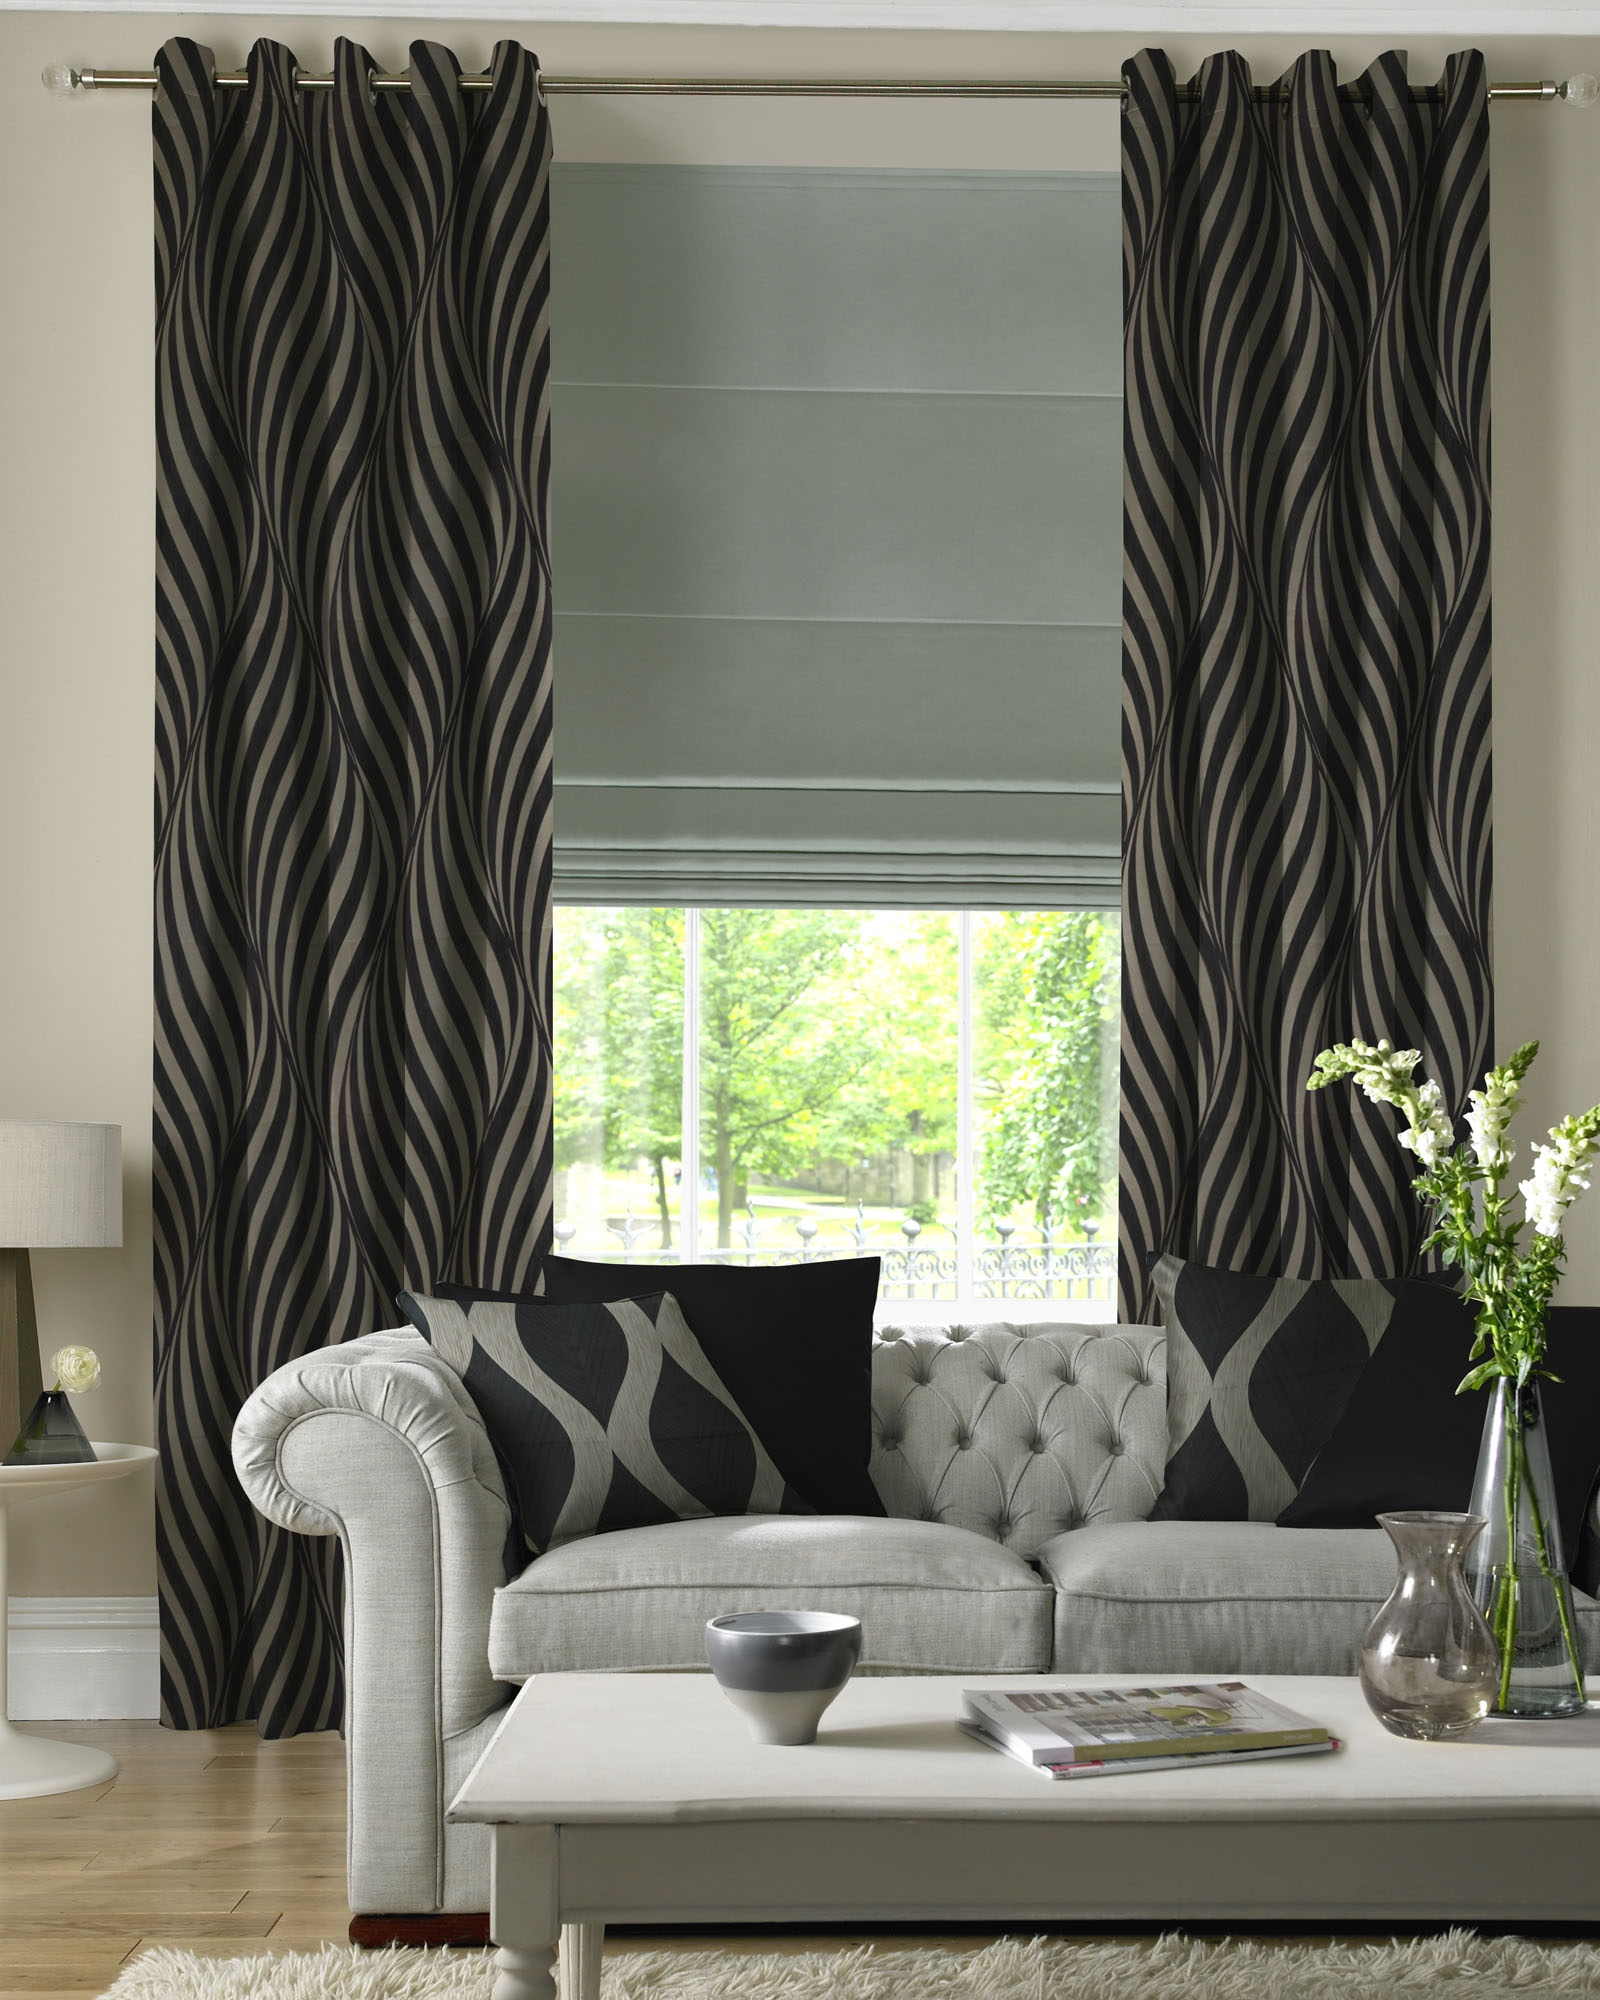 Curtain Glamorous Curtains And Blinds Motorized Curtains And Within Roman Blinds Black (View 11 of 15)